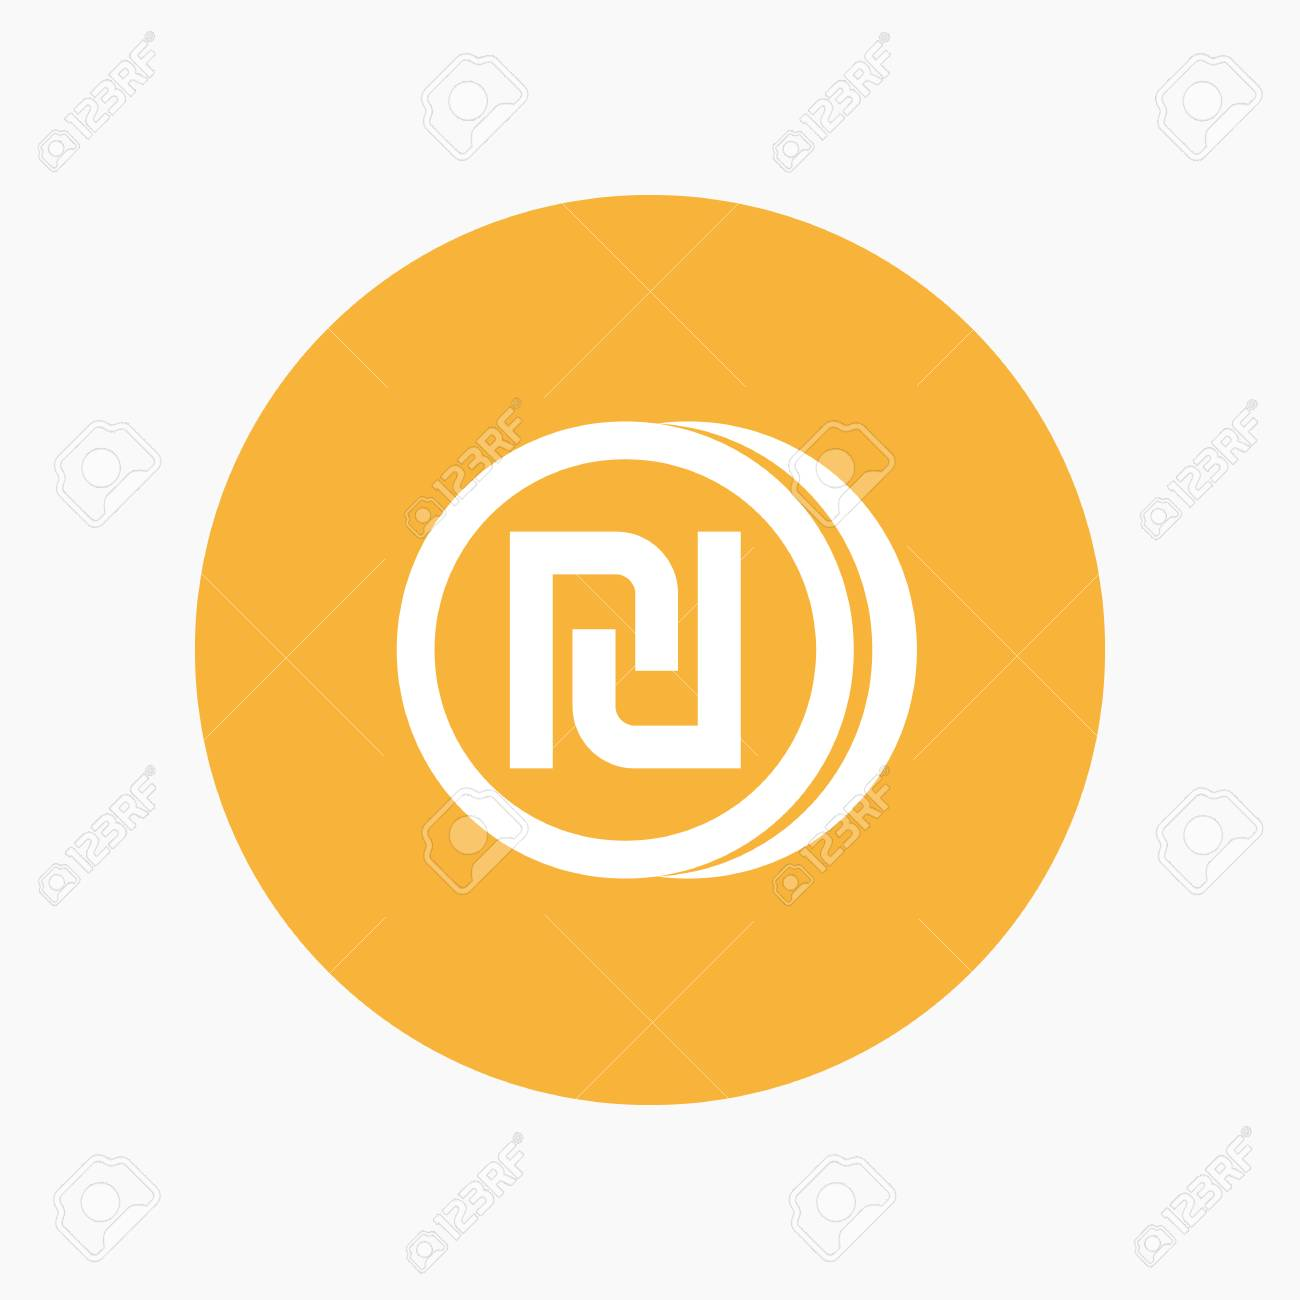 Shekel Coin Icon Israeli Currency Symbol Royalty Free Cliparts